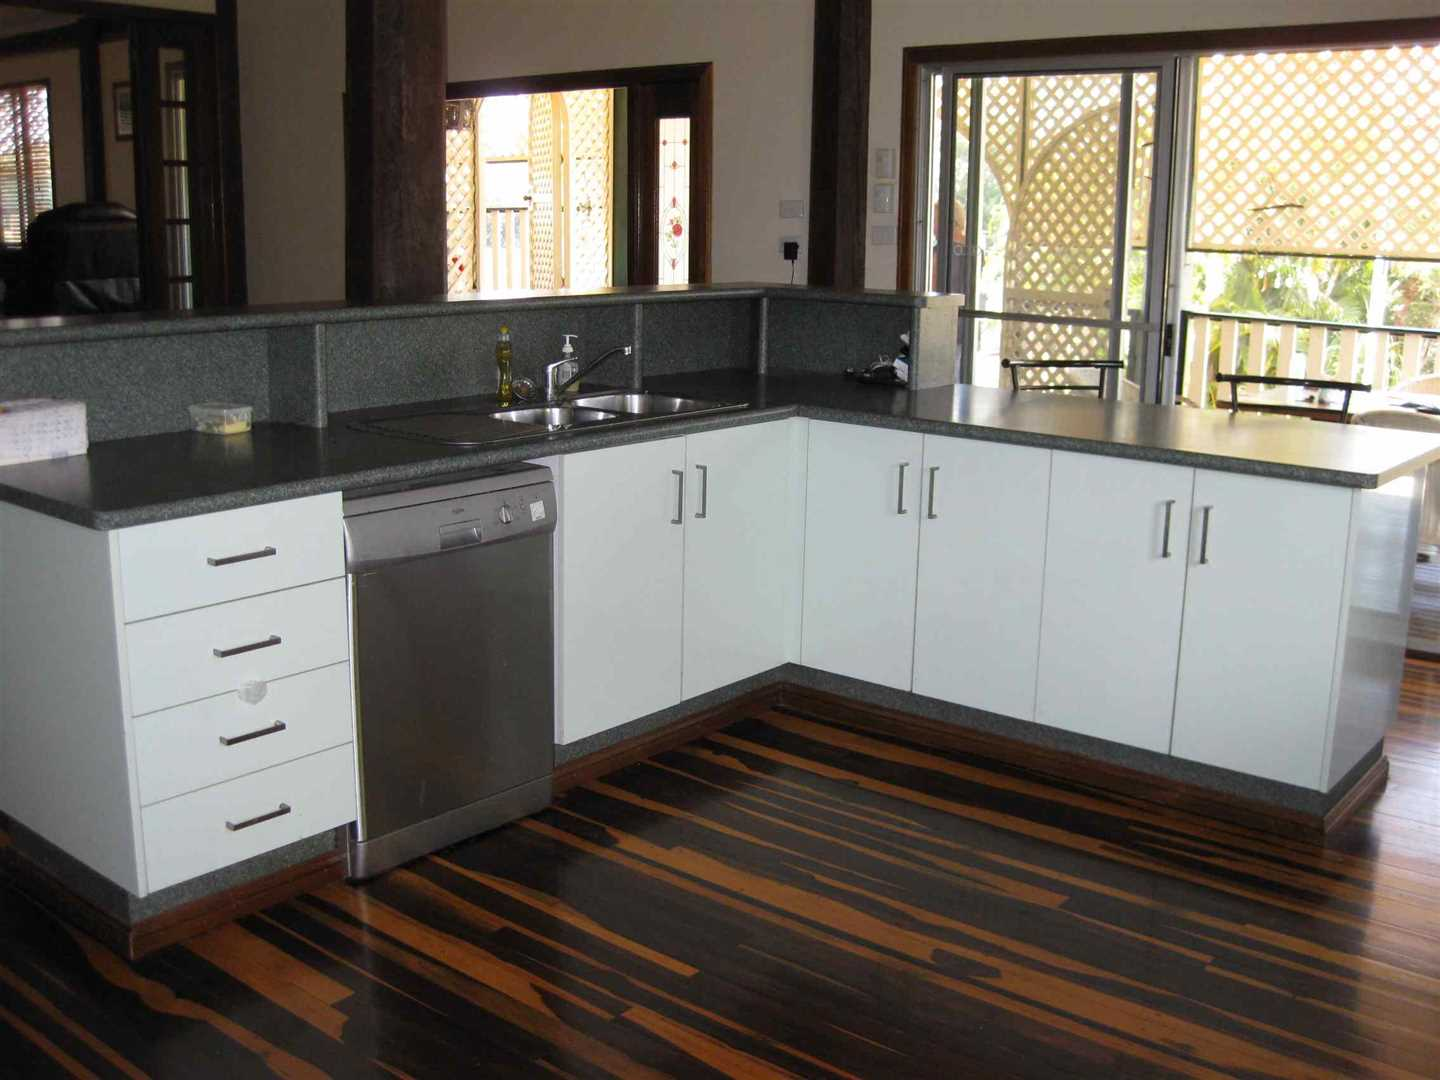 Inside view of part of home showing part of kitchen, photo 1